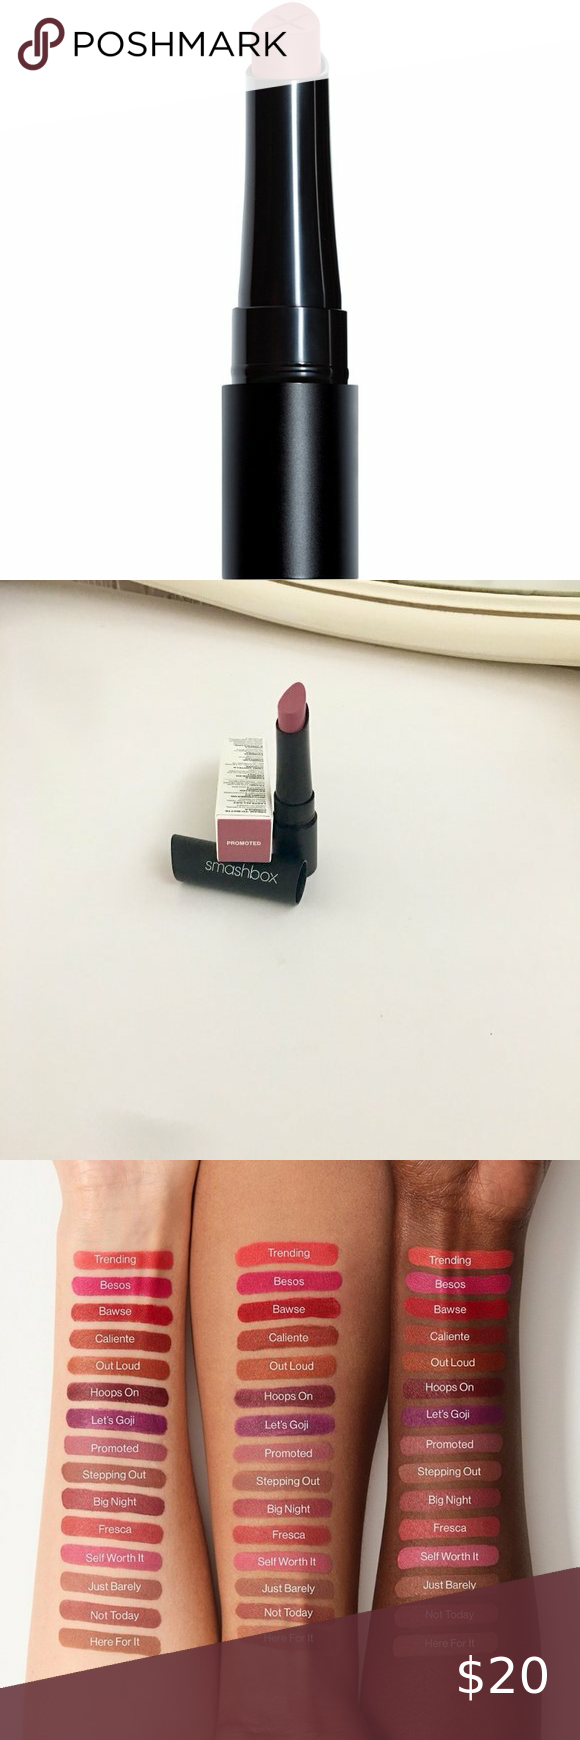 Smashbox Cream To Matte Lipstick In Promoted In 2020 Lipstick Matte Lipstick Long Wear Lipstick